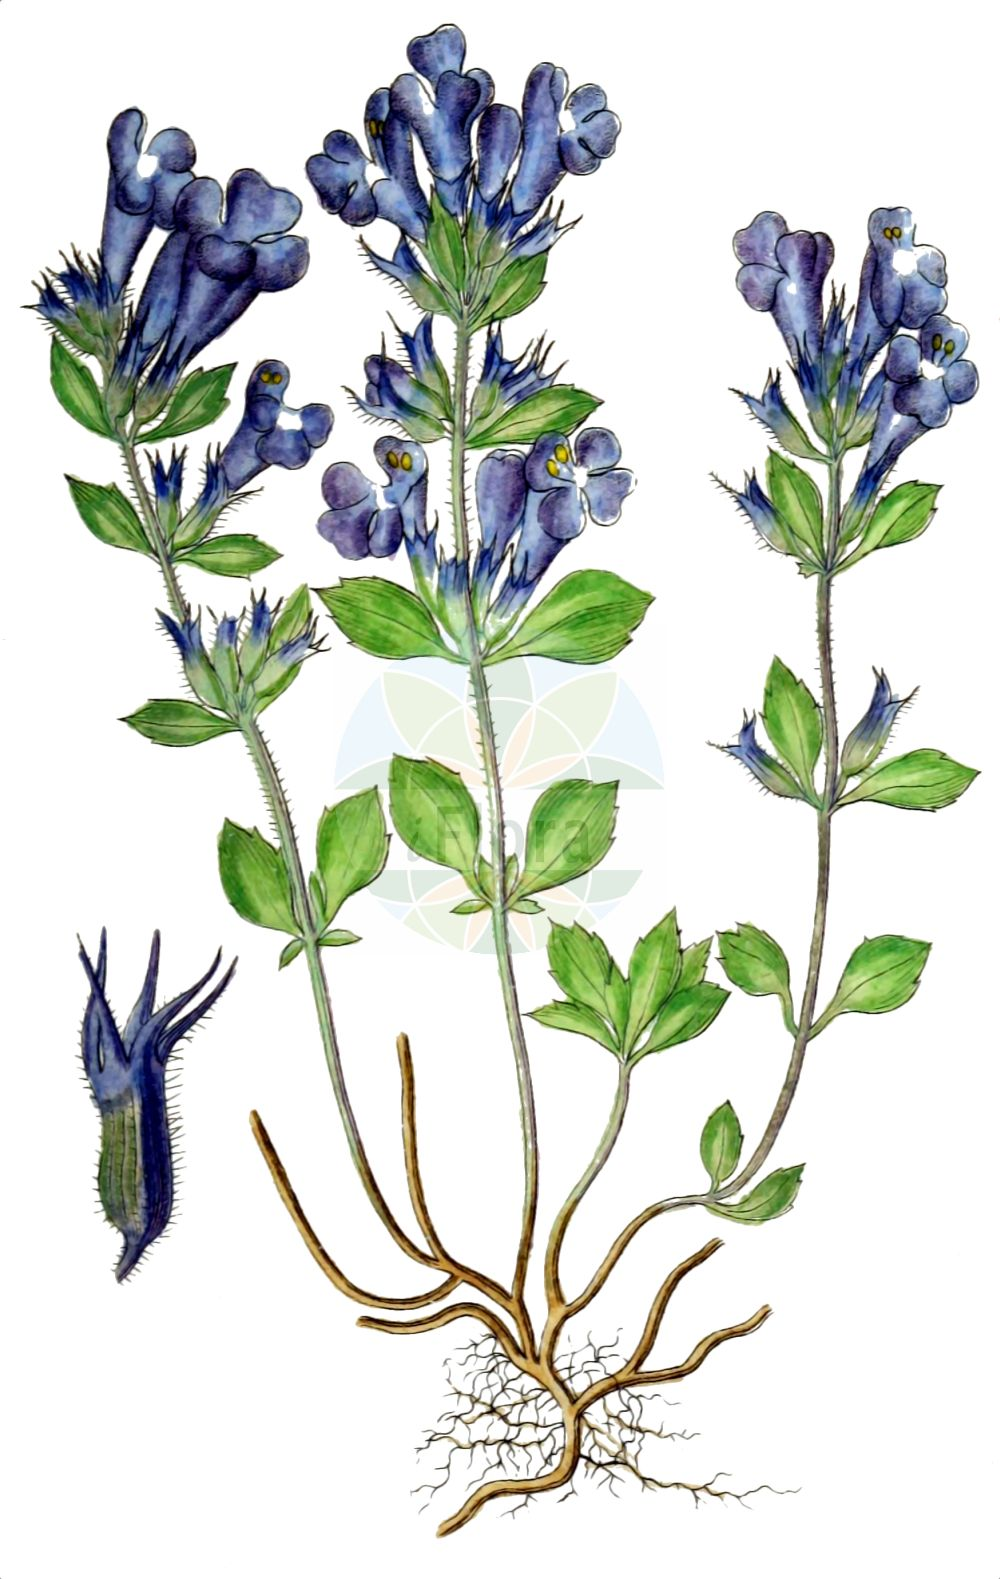 Historische Abbildung von Clinopodium alpinum (Alpen-Steinquendel - Alpine Calamint). Das Bild zeigt Blatt, Bluete, Frucht und Same. ---- Historical Drawing of Clinopodium alpinum (Alpen-Steinquendel - Alpine Calamint).The image is showing leaf, flower, fruit and seed.(Clinopodium alpinum,Alpen-Steinquendel,Alpine Calamint,Clinopodium alpinum,Faucibarba alpina,Melissa alpina,Satureja alpina,Thymus alpinus,Alpen-Steinquendel,Alpenquendel,Alpine Calamint,Rock Thyme,Clinopodium,Wirbeldost,Calamint,Lamiaceae,Lippenbluetengewaechse,Lippenbluetler,Nettle family,Blatt,Bluete,Frucht,Same,leaf,flower,fruit,seed,Sturm (1796f))